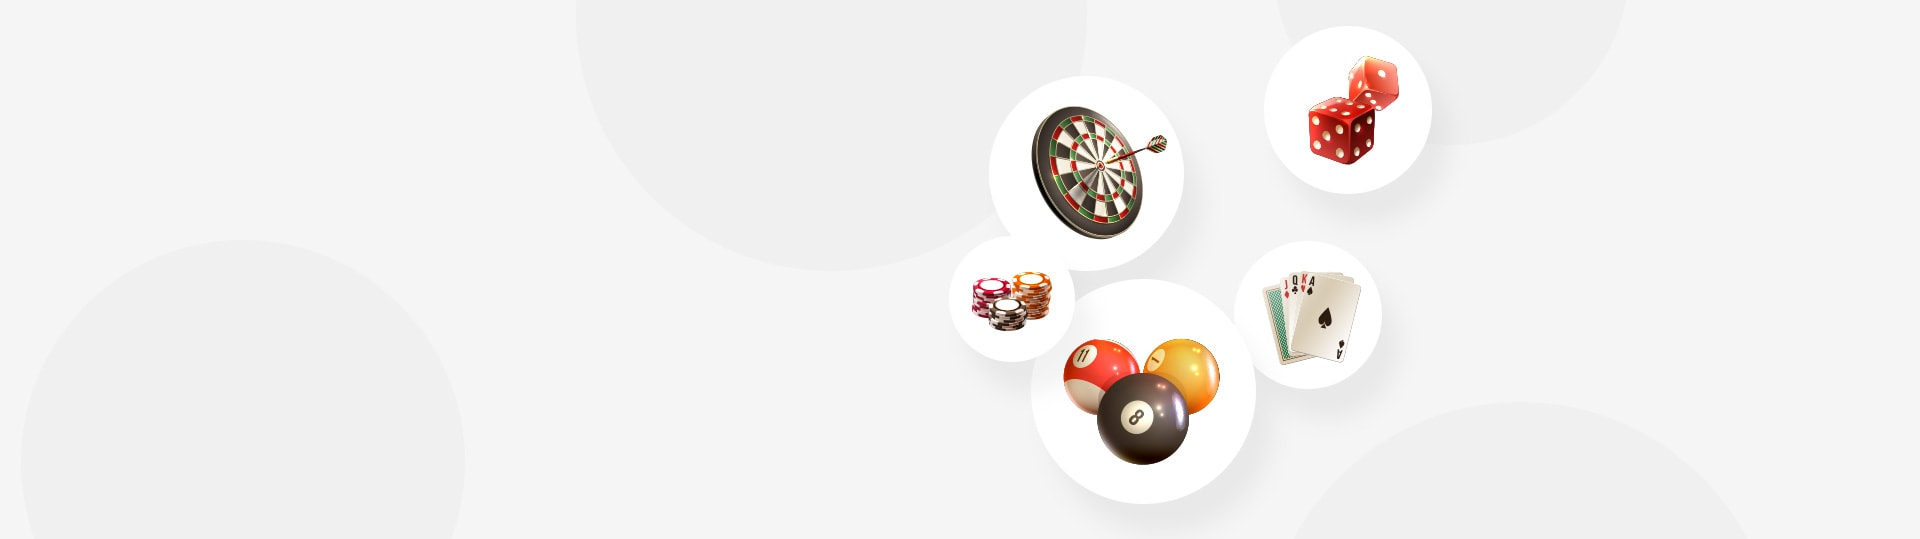 casinoinformation-nu-banner